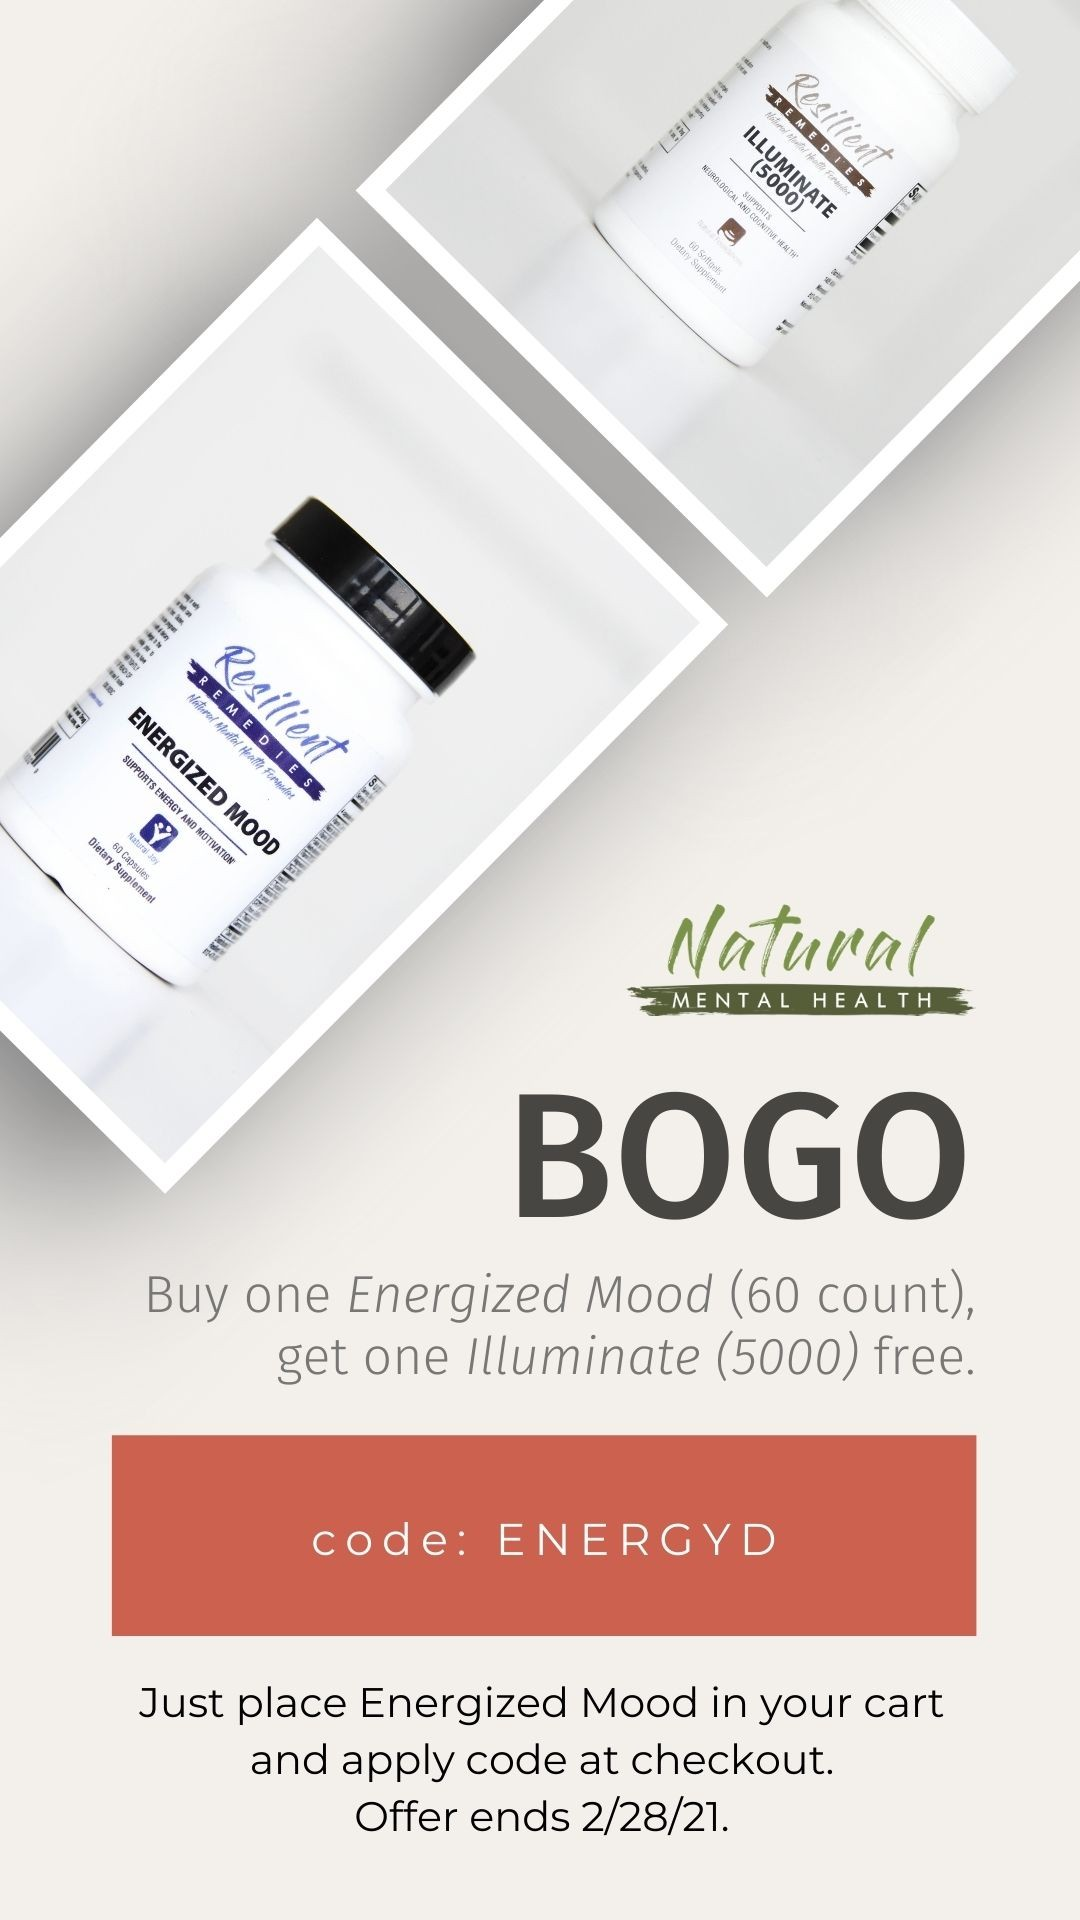 Buy one Energized Mood (60 count), get one Illuminate (5000) free. Use code ENERGYD at checkout.